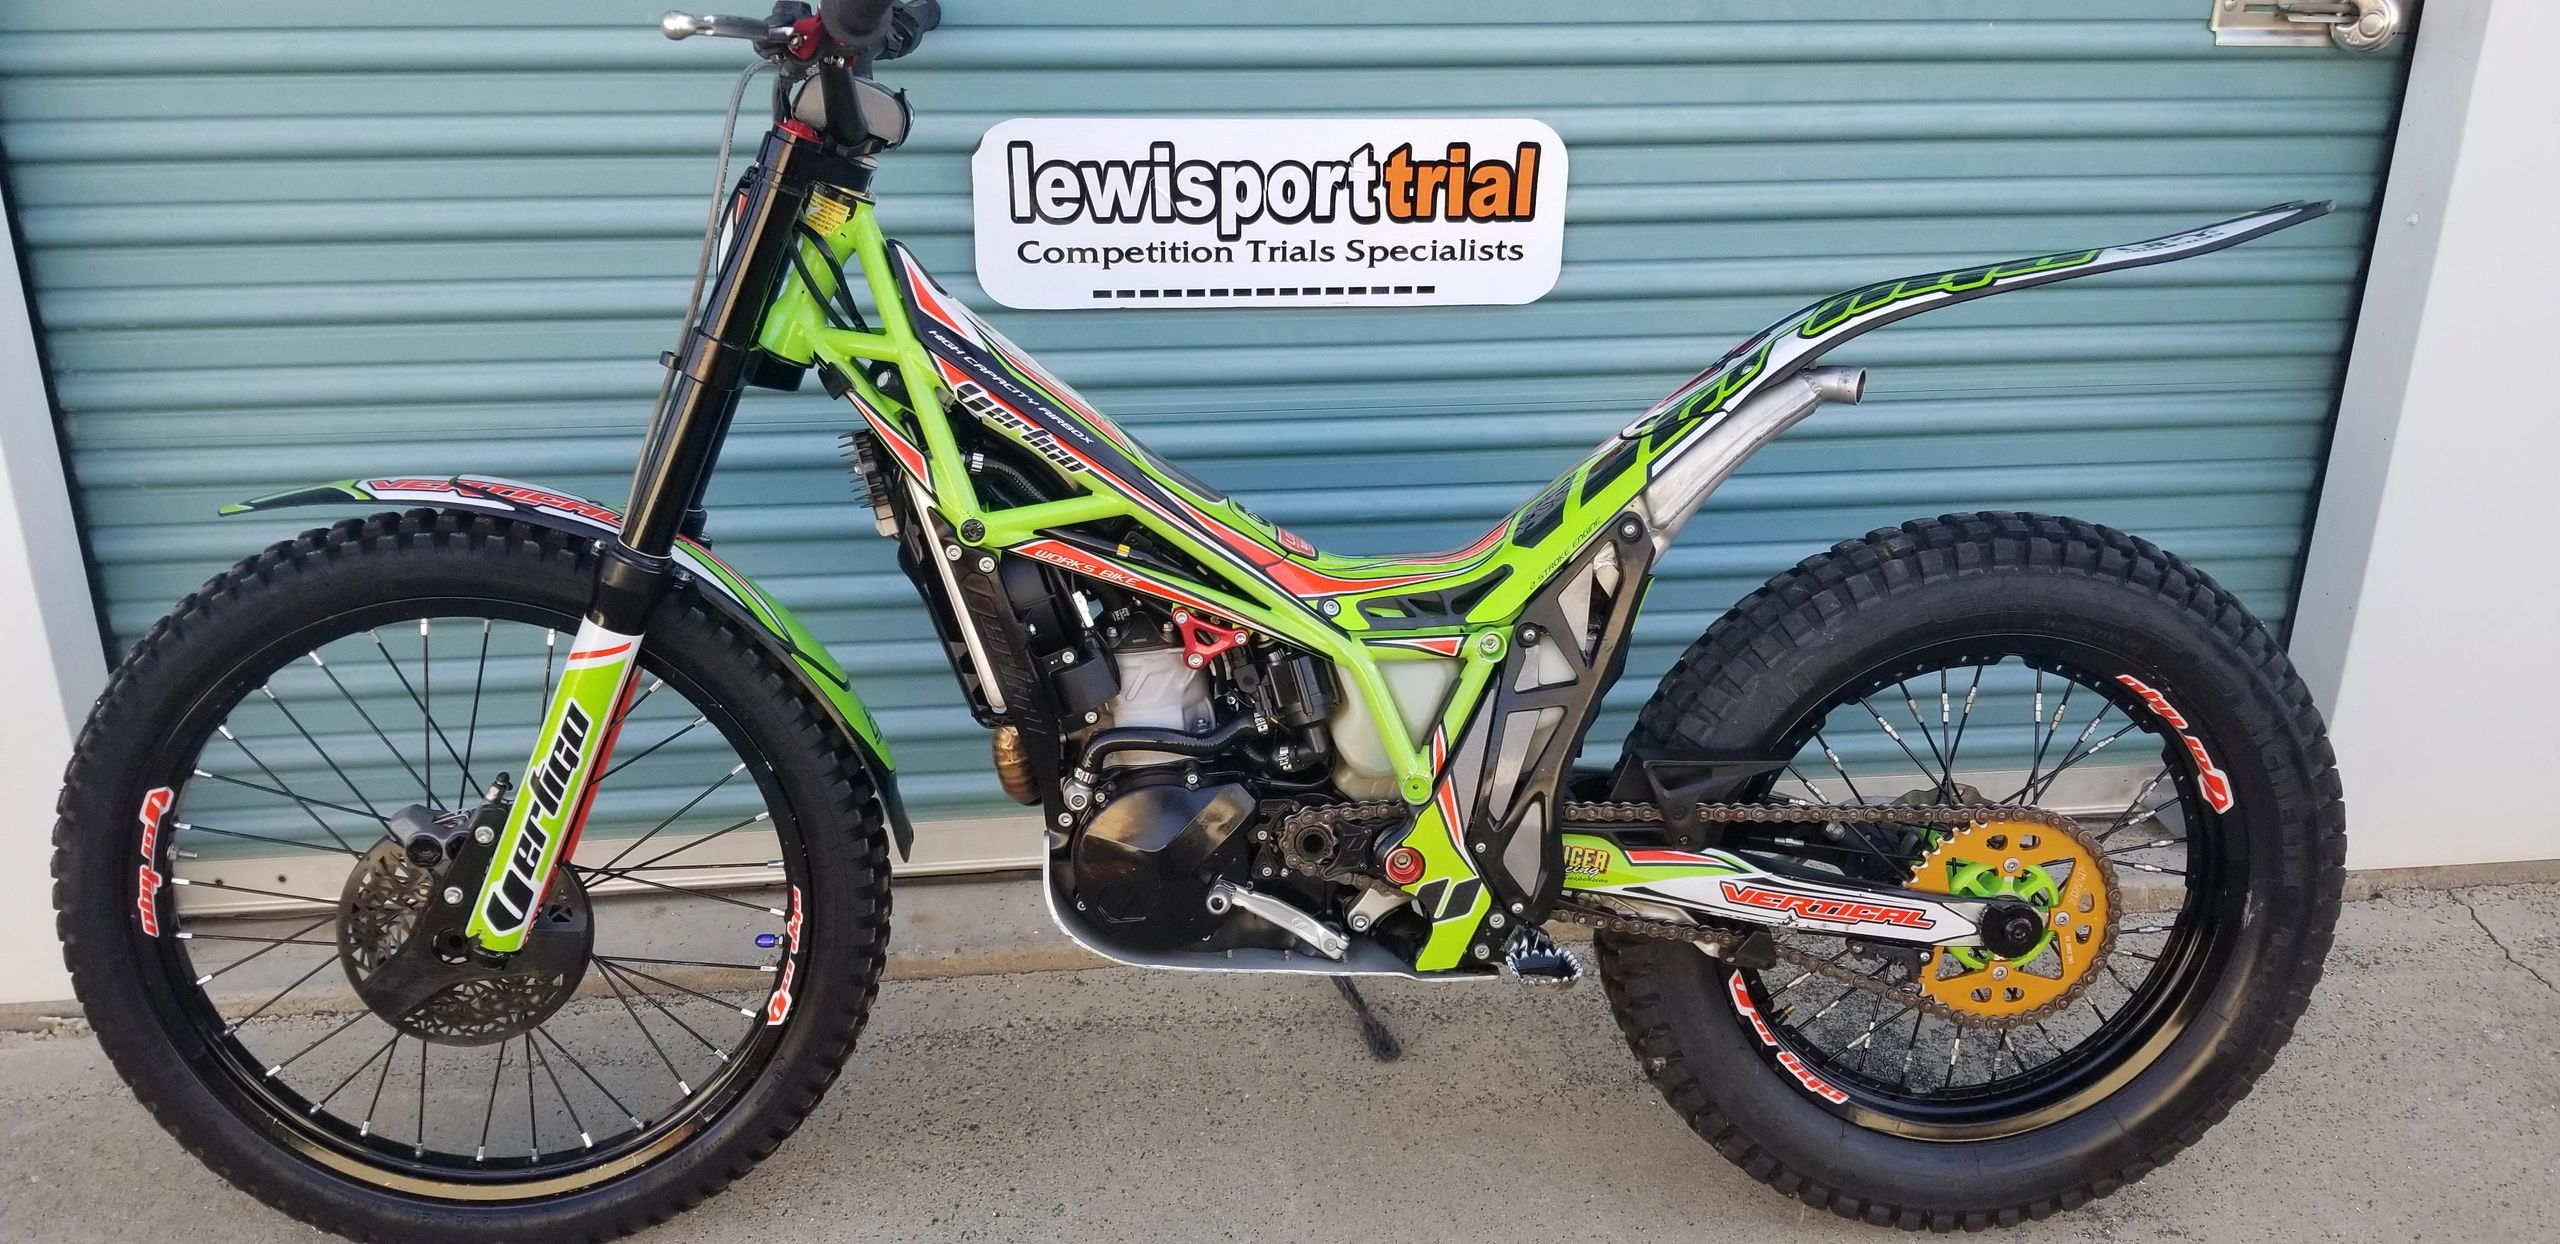 "{""blocks"":[{""key"":""e406e"",""text"":""2018 Vertigo Vertical 250cc fuel injected, nice clean example of this VERY capable bike--just serviced , ready to trial!."",""type"":""unstyled"",""depth"":0,""inlineStyleRanges"":[],""entityRanges"":[],""data"":{}},{""key"":""22fts"",""text"":""PERFECT for the beginer or ther pro, "",""type"":""unstyled"",""depth"":0,""inlineStyleRanges"":[],""entityRanges"":[],""data"":{}},{""key"":""5tpds"",""text"":""$7500, call text or email--lewisportusa "",""type"":""unstyled"",""depth"":0,""inlineStyleRanges"":[],""entityRanges"":[],""data"":{}}],""entityMap"":{}}"